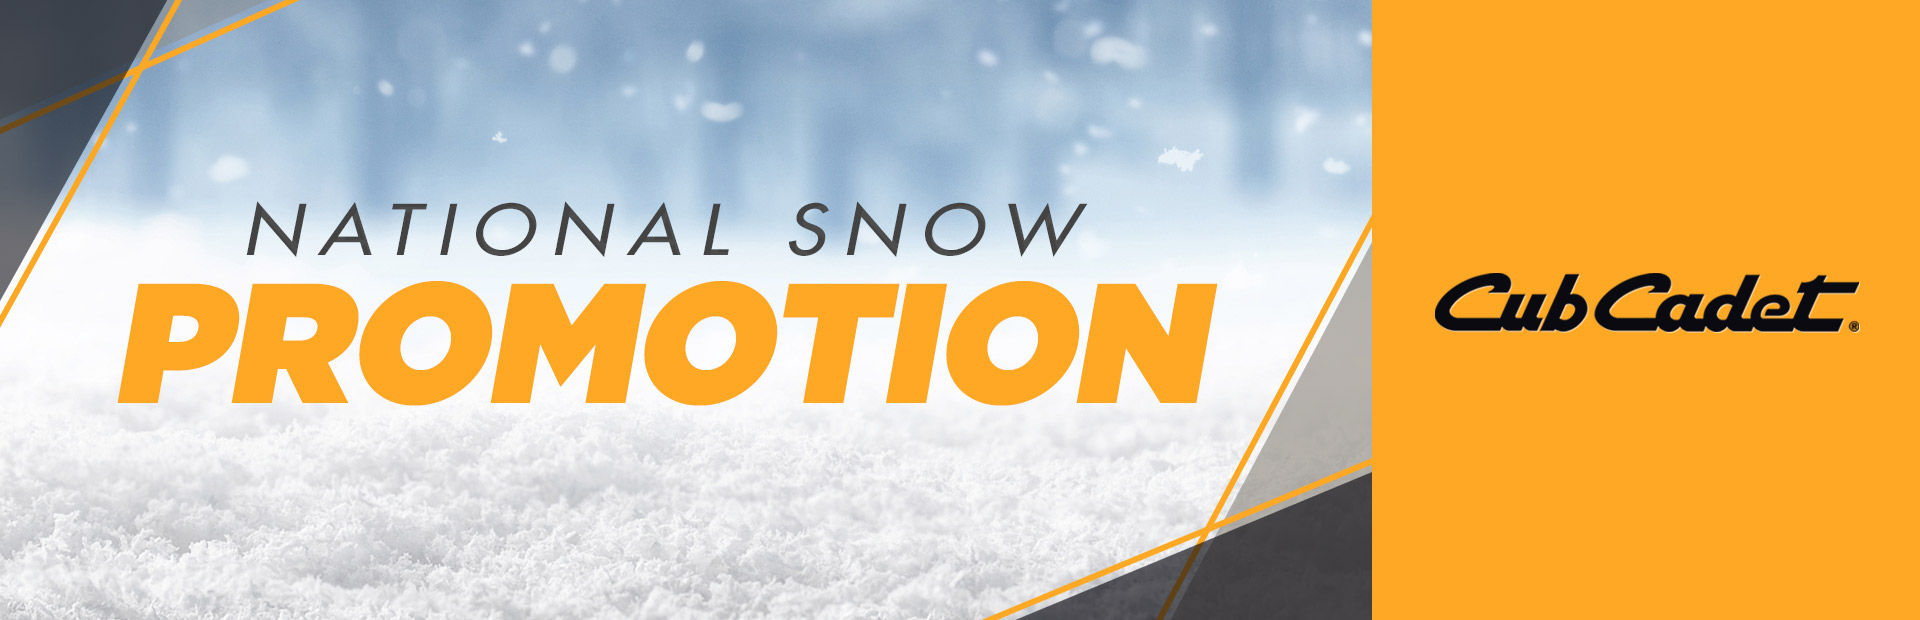 National Snow Promotion